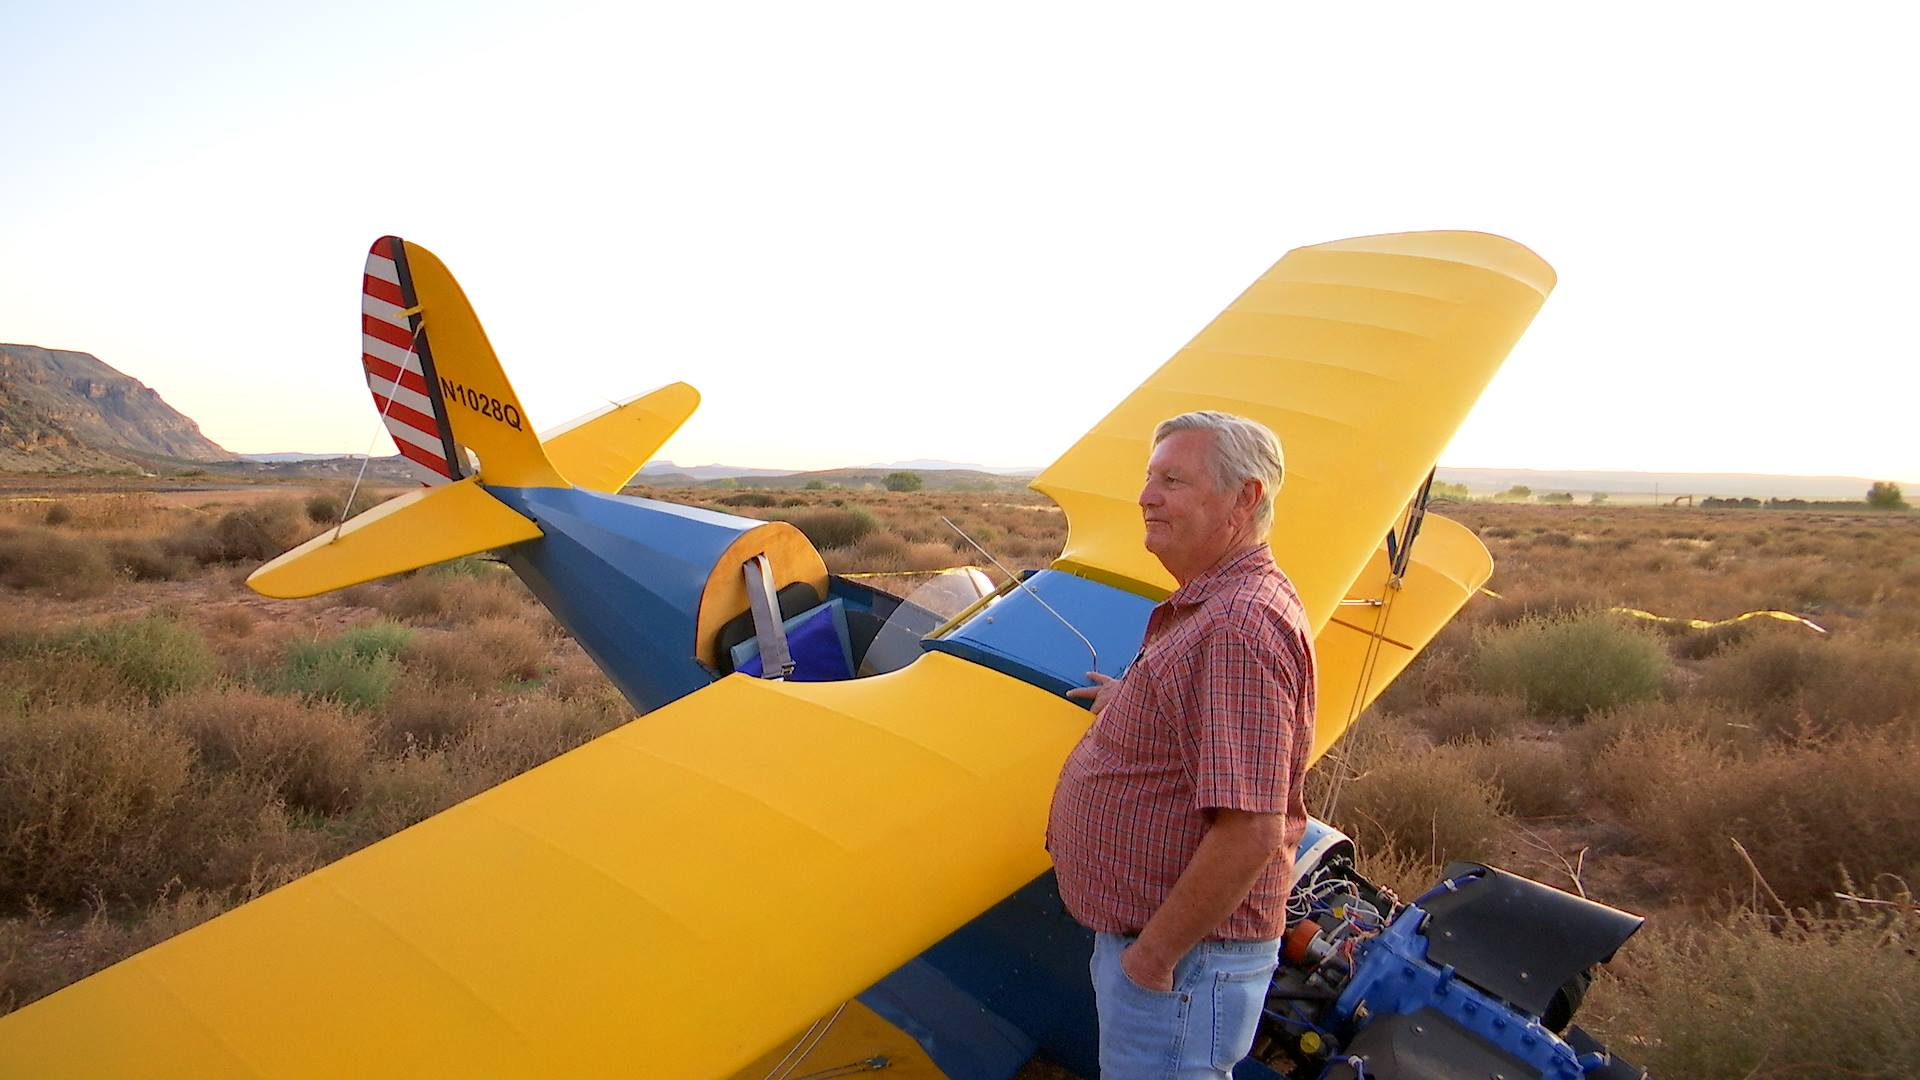 """A pilot crashed his recently-purchased 2006 Buddy Baby Lake fixed-wing, single-engine airplane while attempting a """"main-wheel takeoff"""" takeoff at the Hurricane City Airport, 800 W. 2300 South, Hurricane, Utah, Nov. 10, 2016 